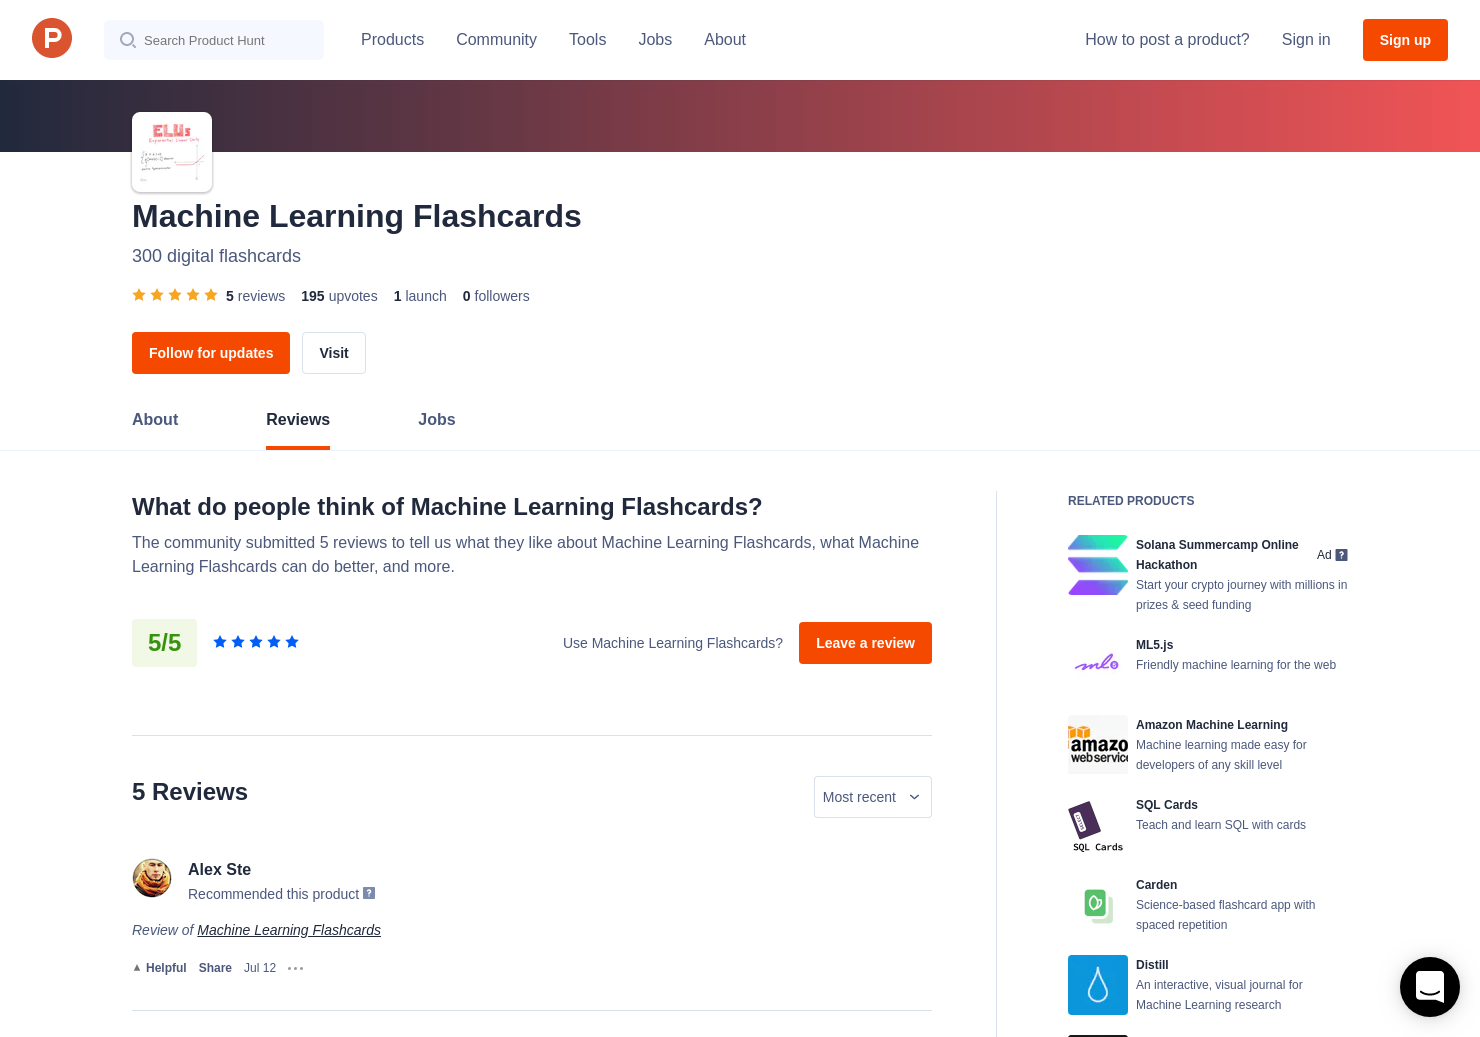 4 Machine Learning Flashcards Reviews - Pros, Cons and